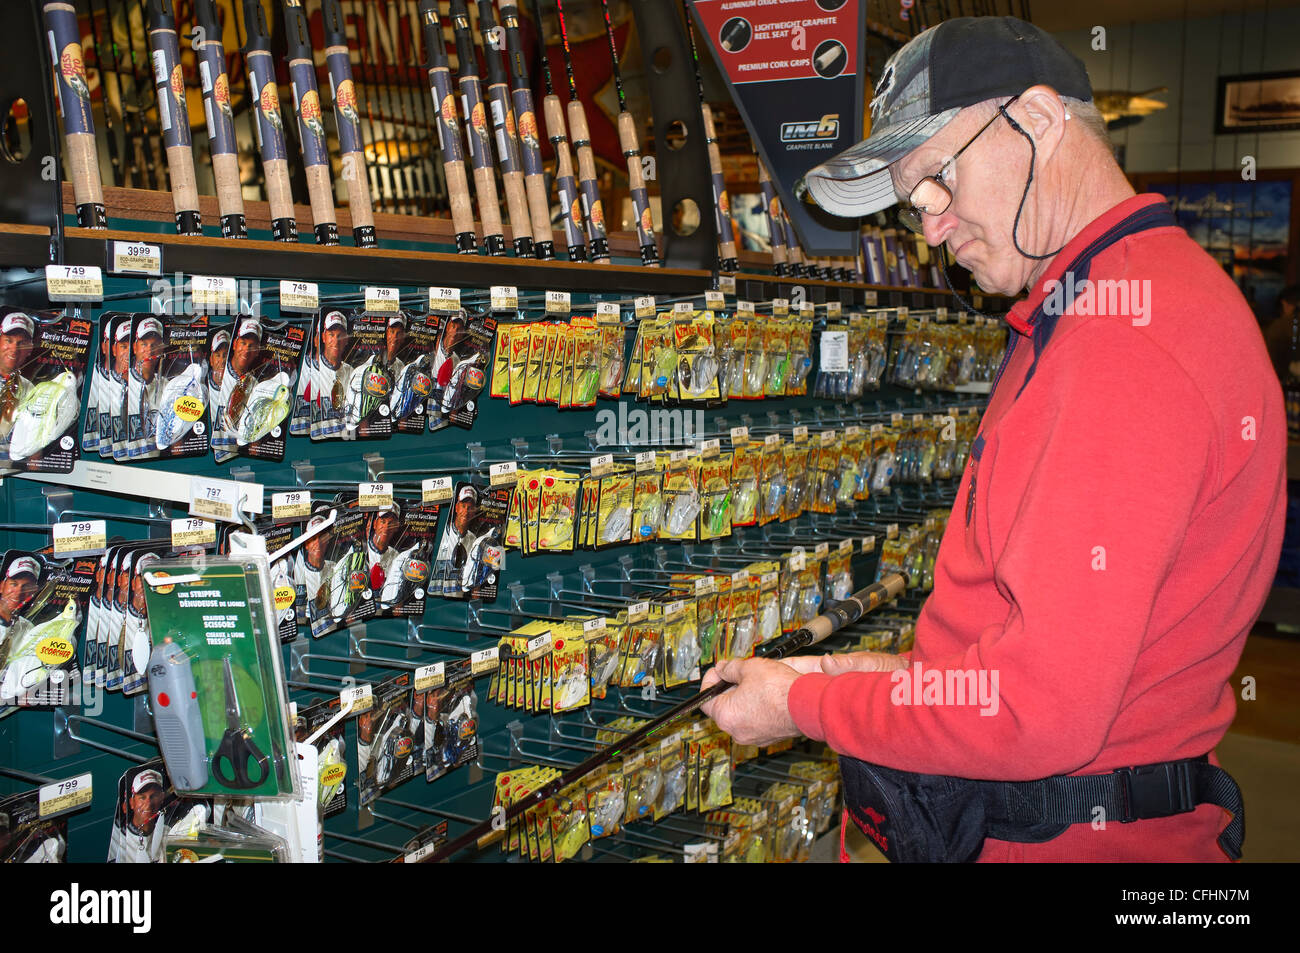 Man shopping for fishing equipment at Bass Pro store in San